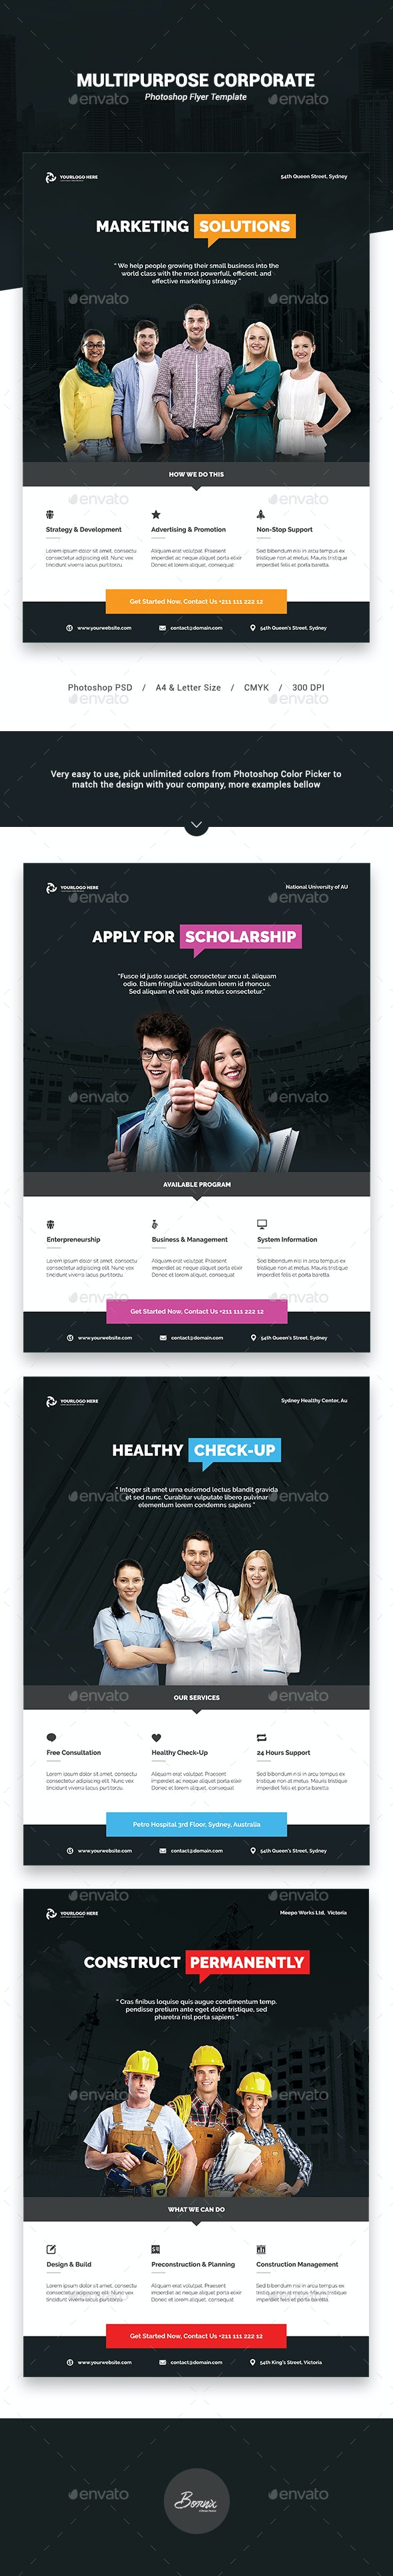 Multipurpose Corporate Flyer Template - Corporate Flyers